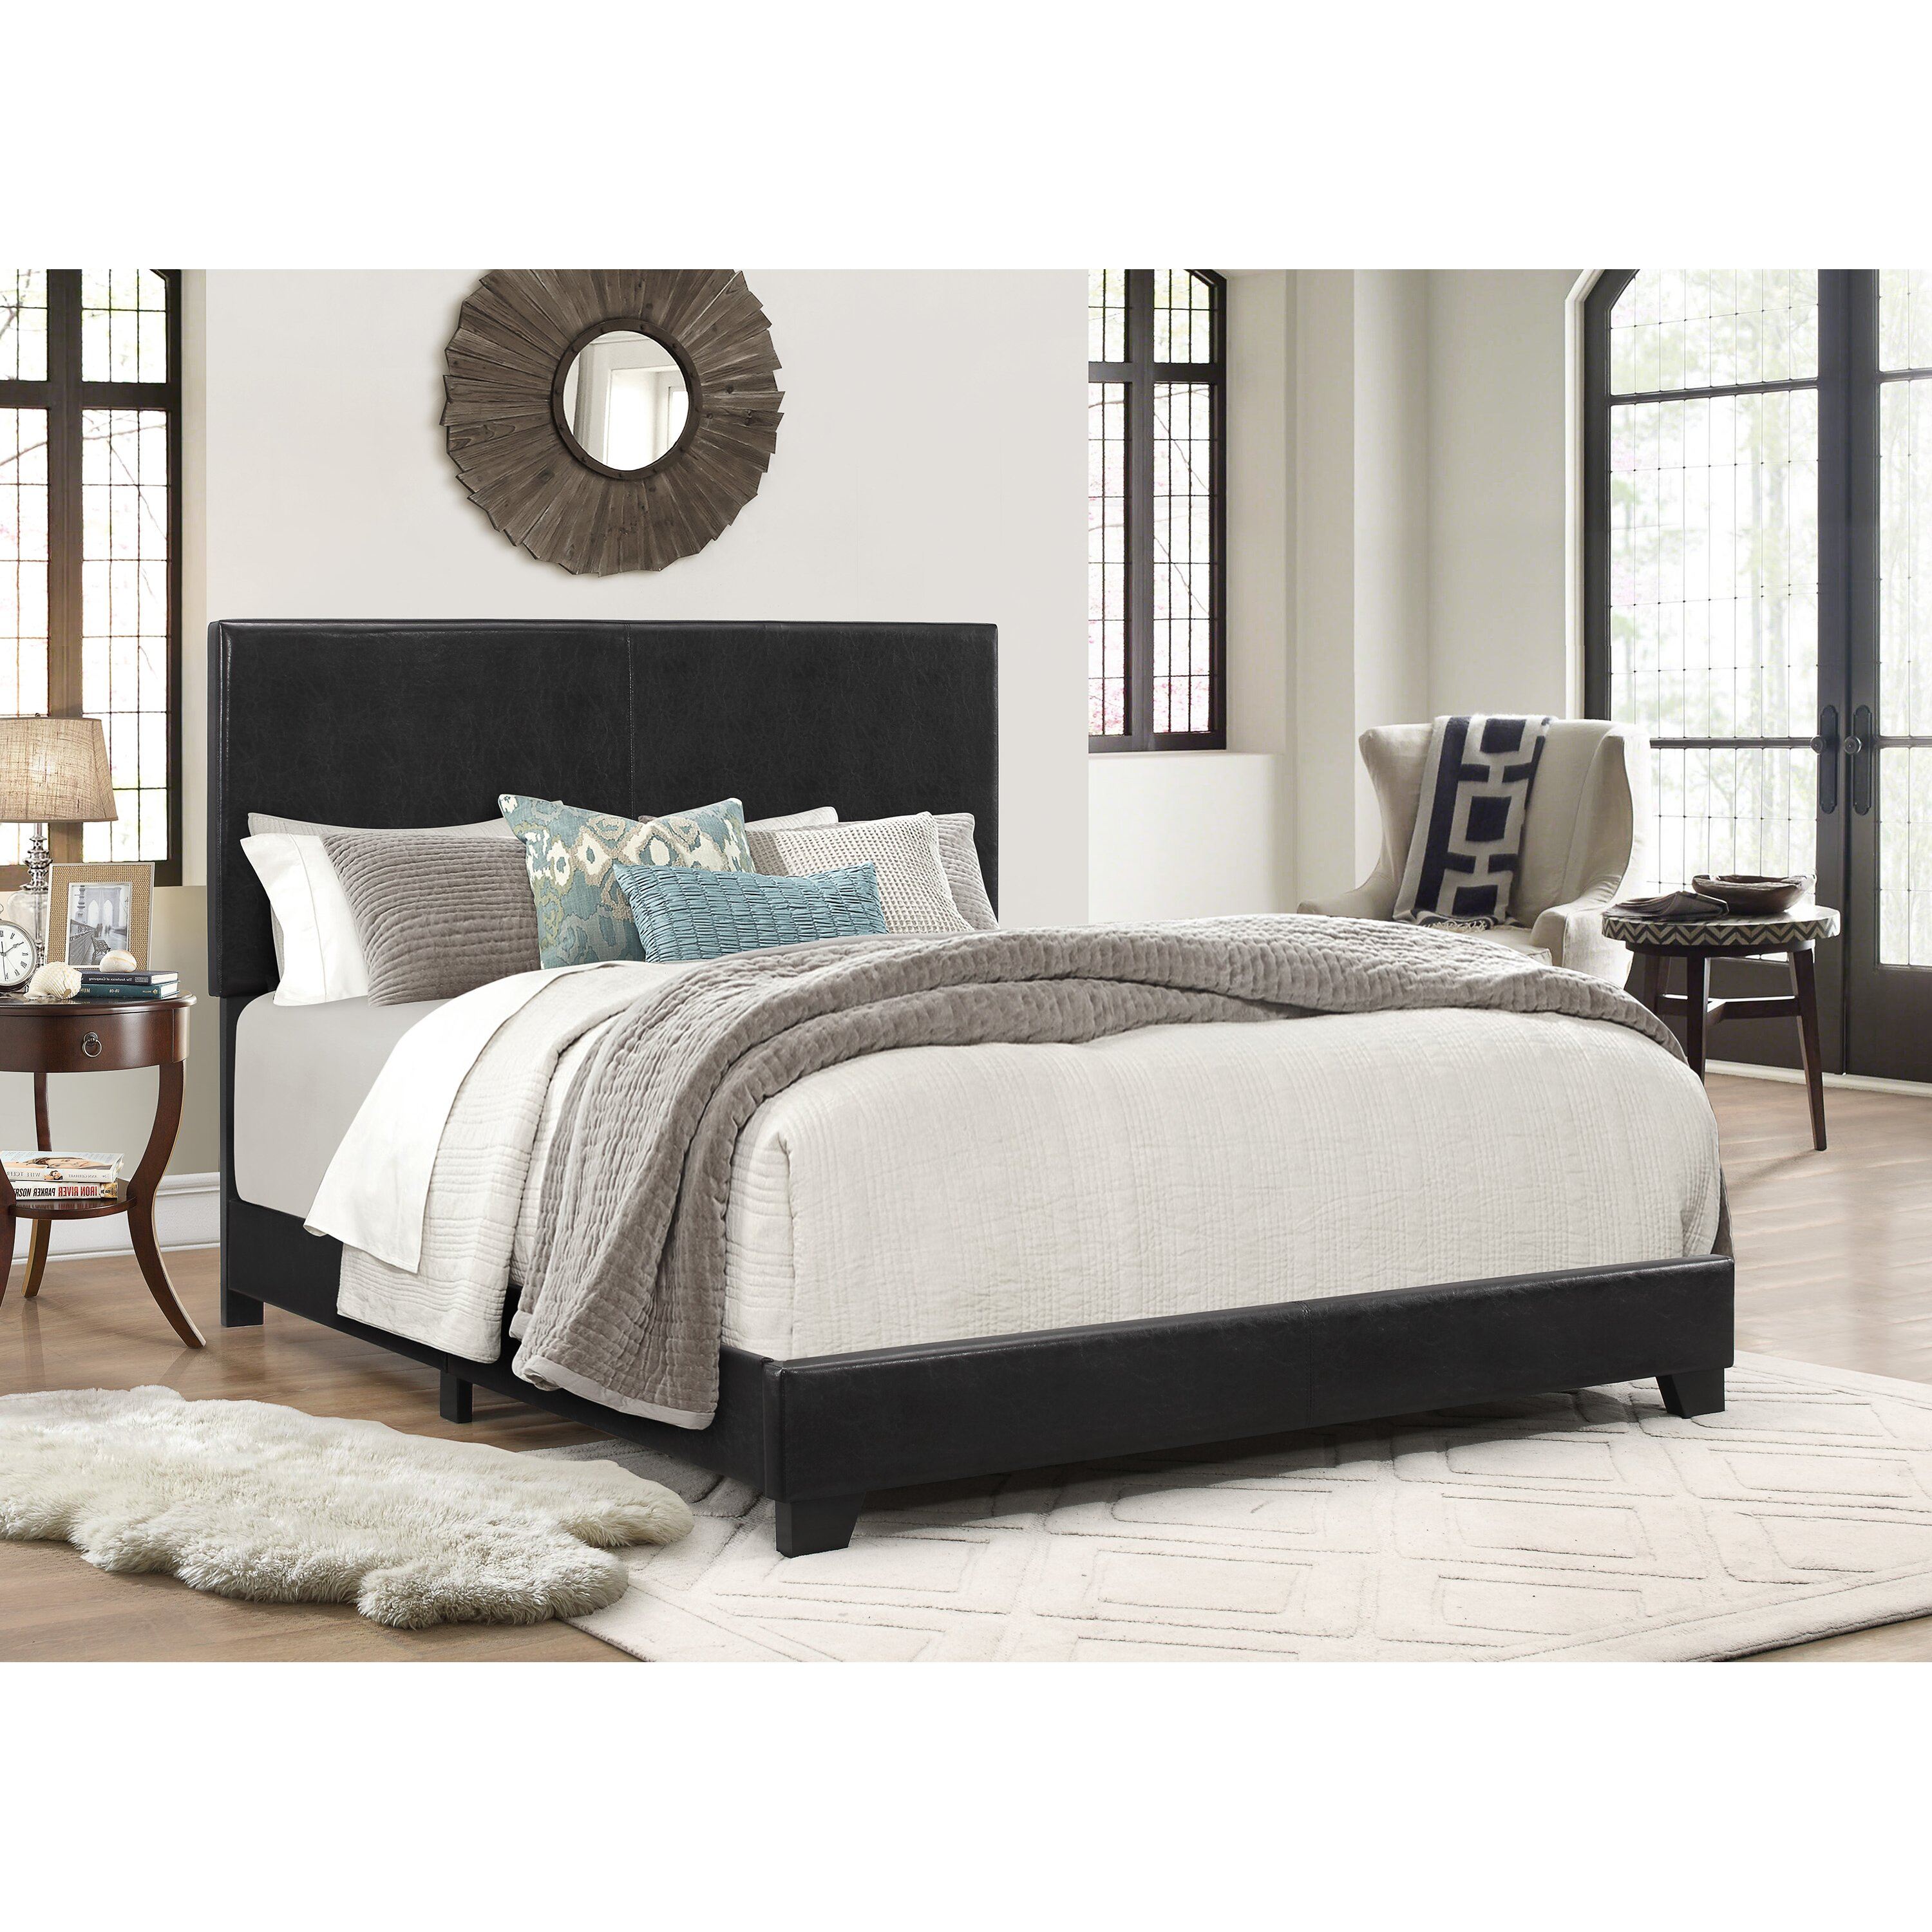 Now Pay Later Bedroom Furniture Beds Youll Love Wayfair